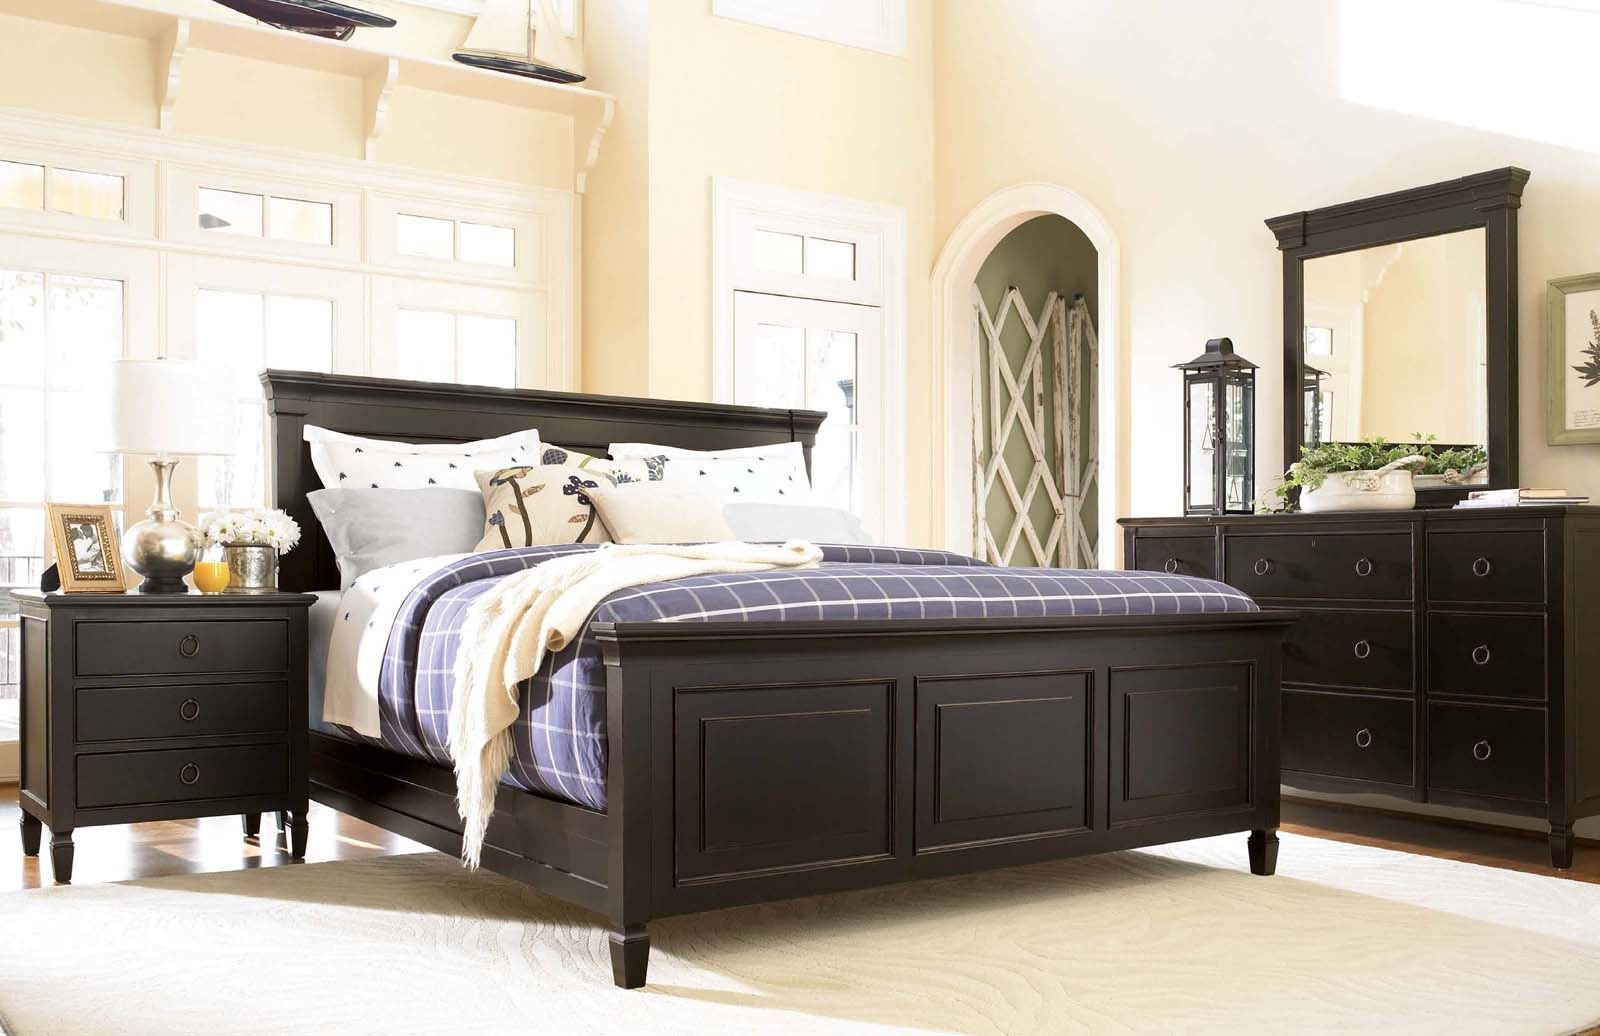 Cal king bed set furniture vintage modern furniture check more at http